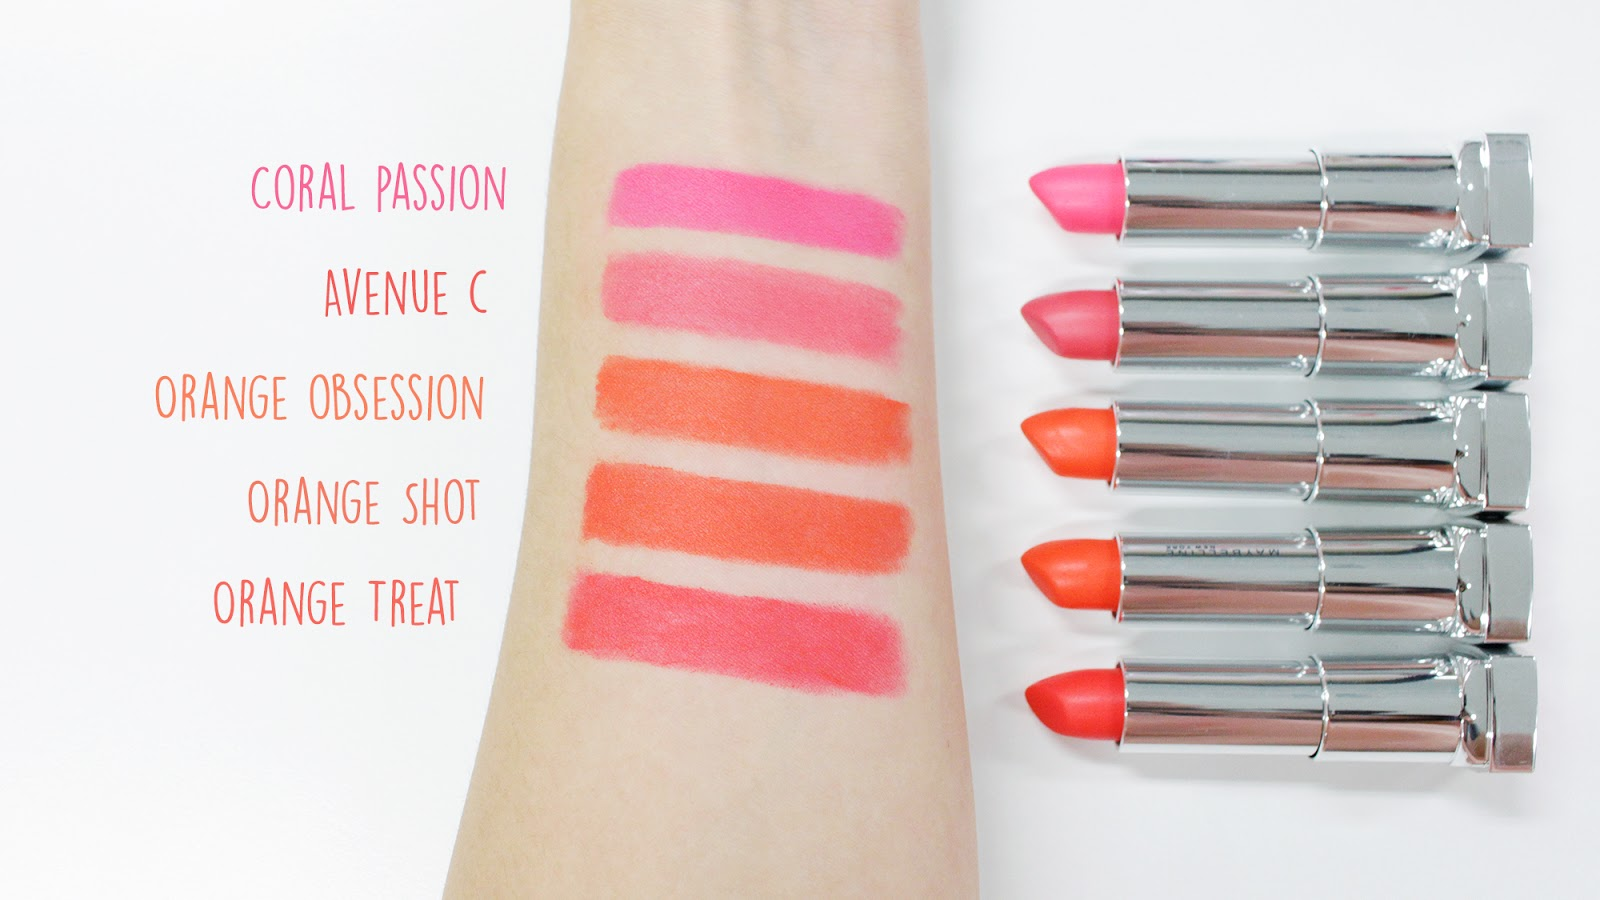 Maybelline The Powder Mattes Orange Shades Swatches | www.bigdreamerblog.com